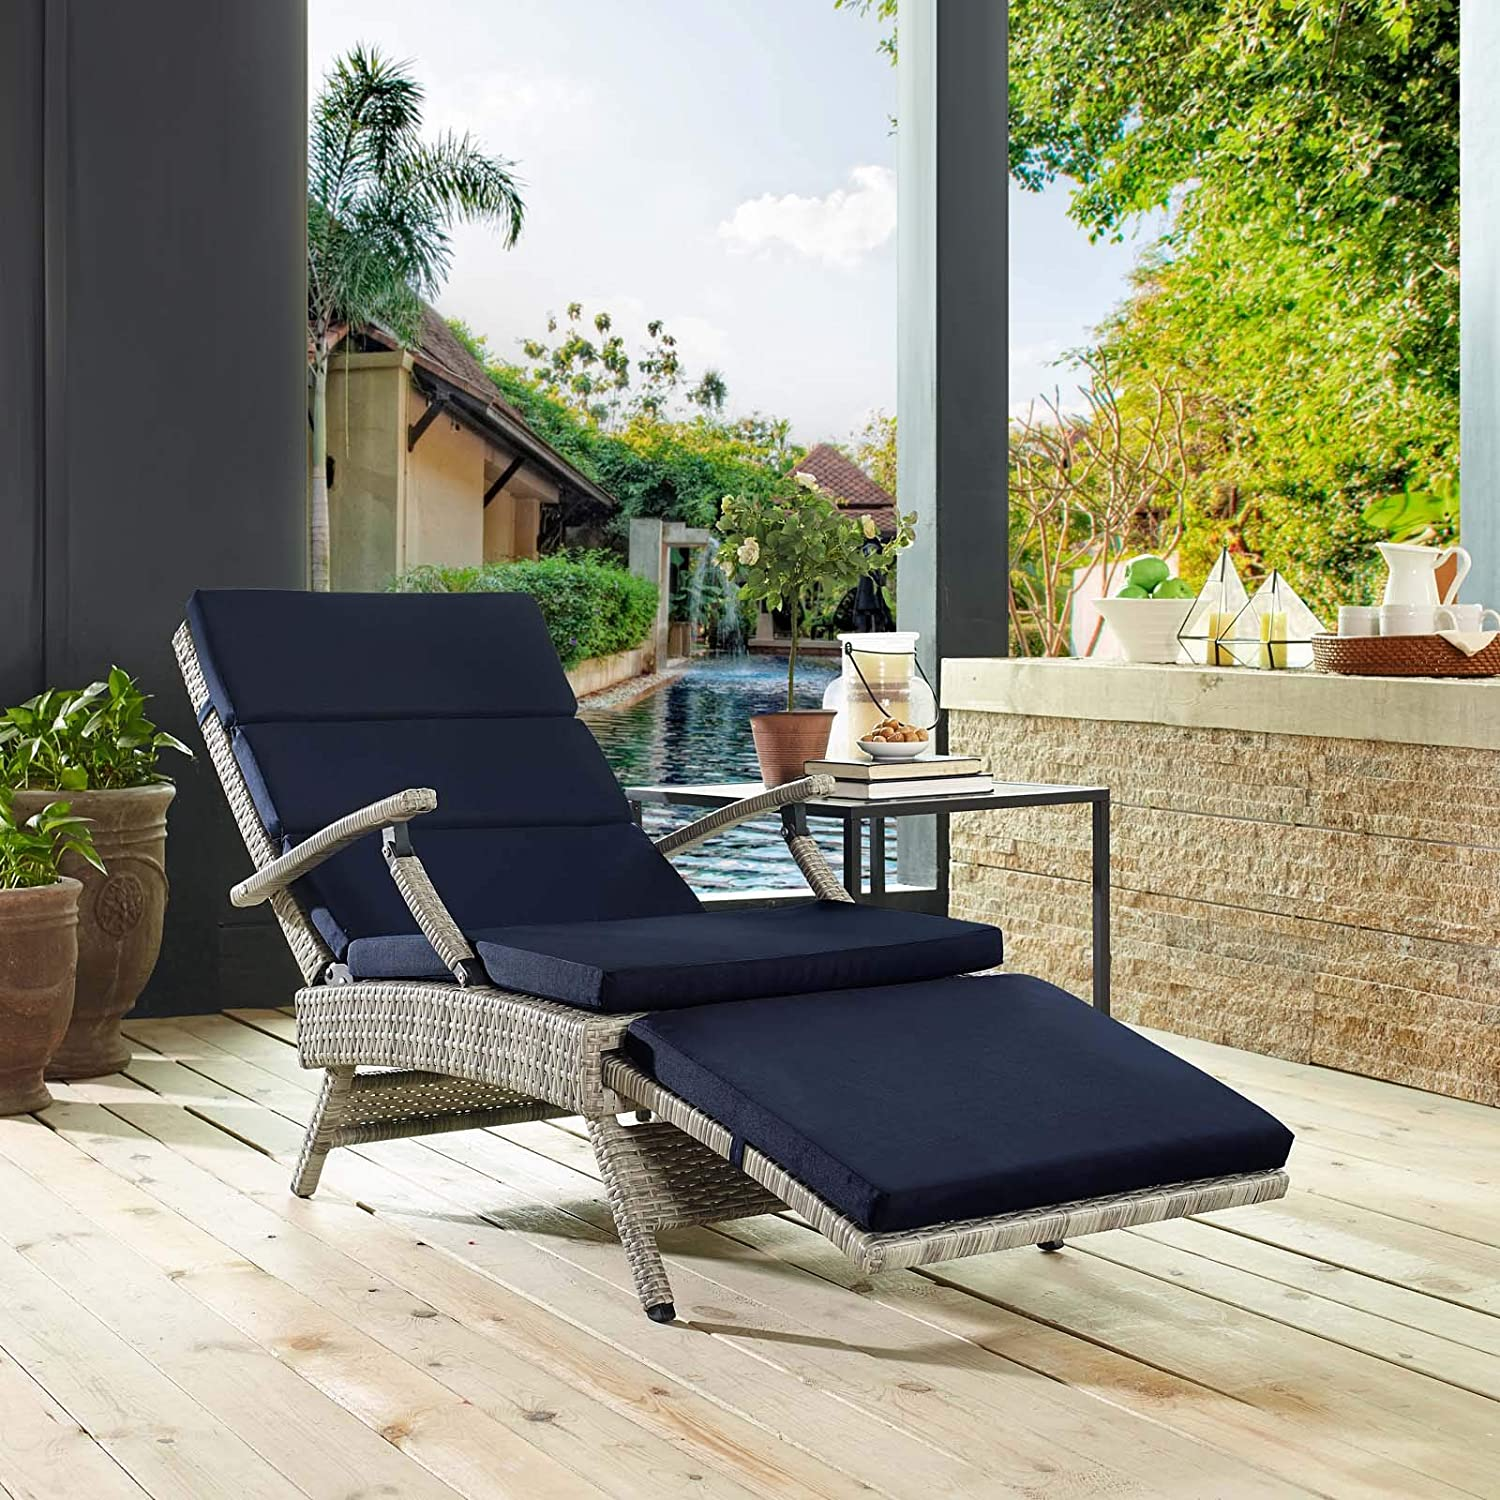 Modway Envisage Outdoor Patio Wicker Rattan Chaise Lounge in Light Gray Navy